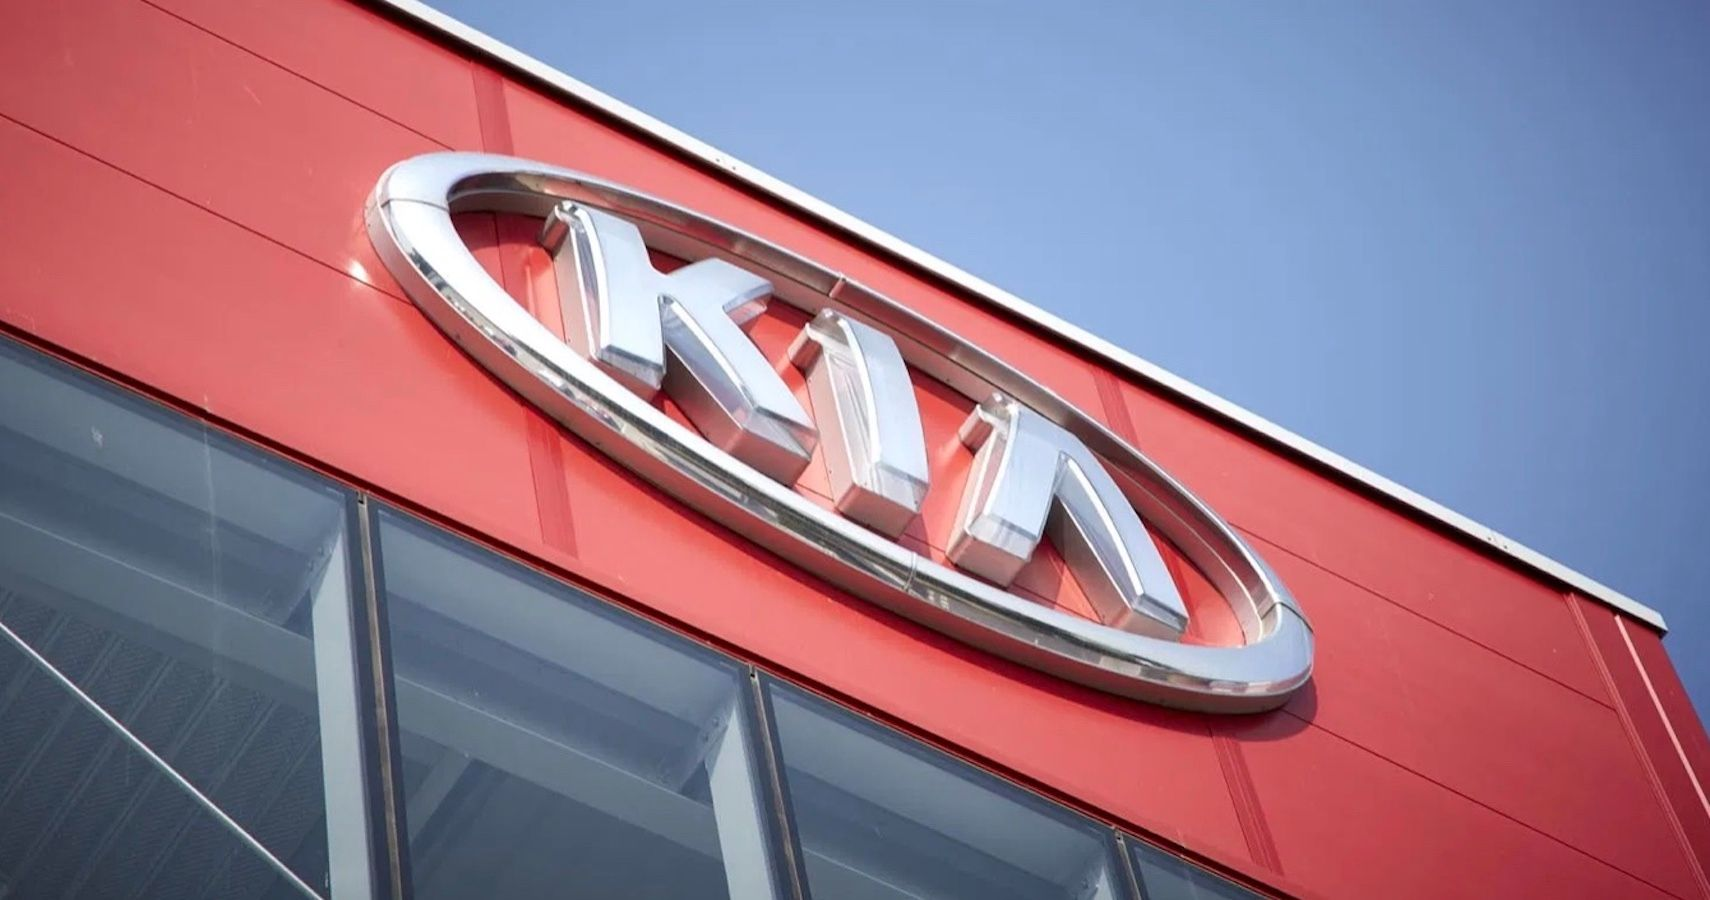 Kia Motors Reportedly Impacted By $20M Cyberattack Ransom